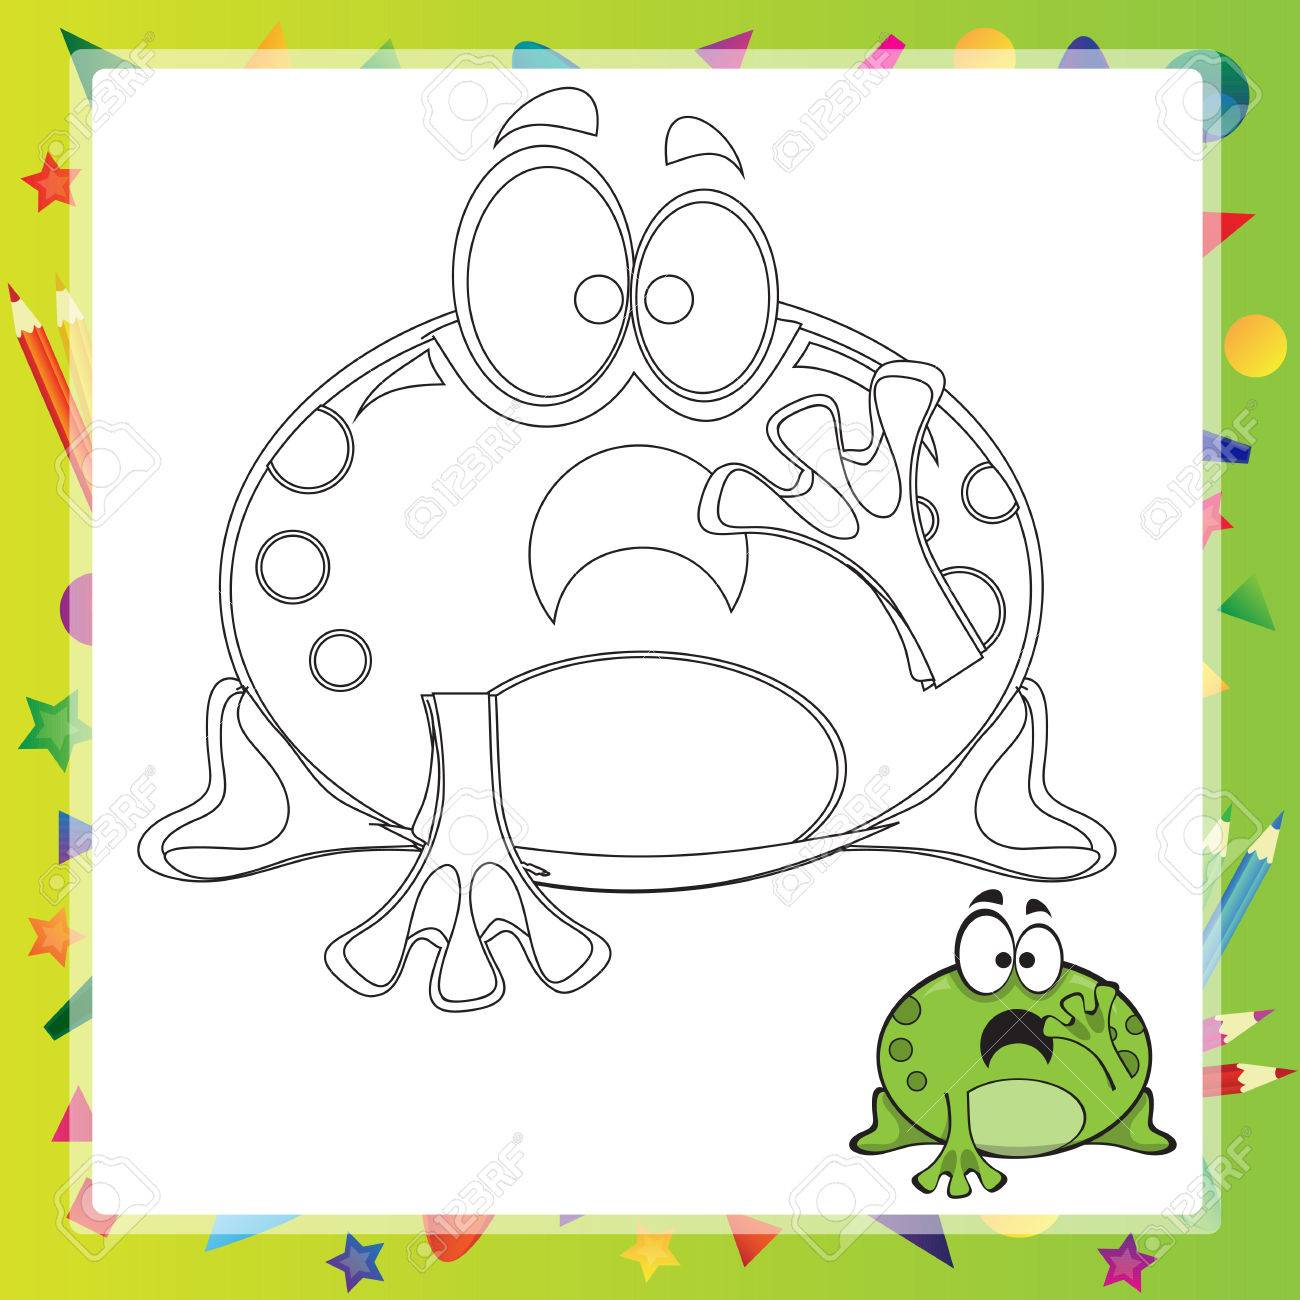 Illustration Of Cartoon Frog - Coloring Book - Vector Royalty Free ...